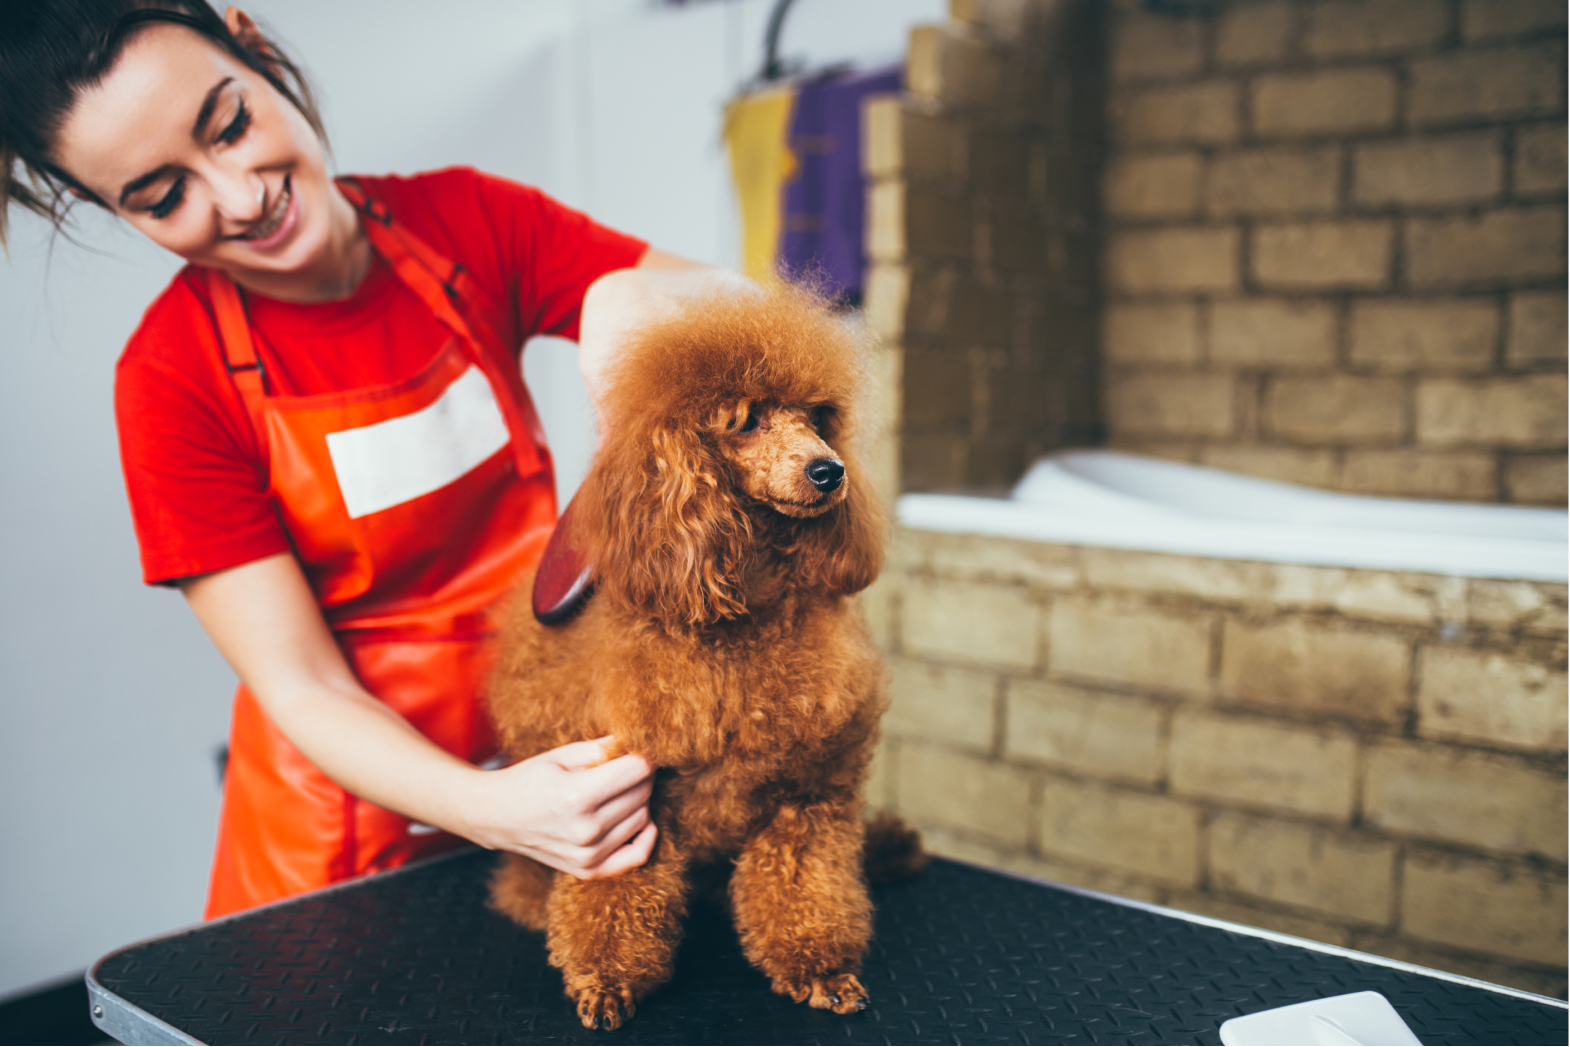 Where can I find a list of local dog groomers?